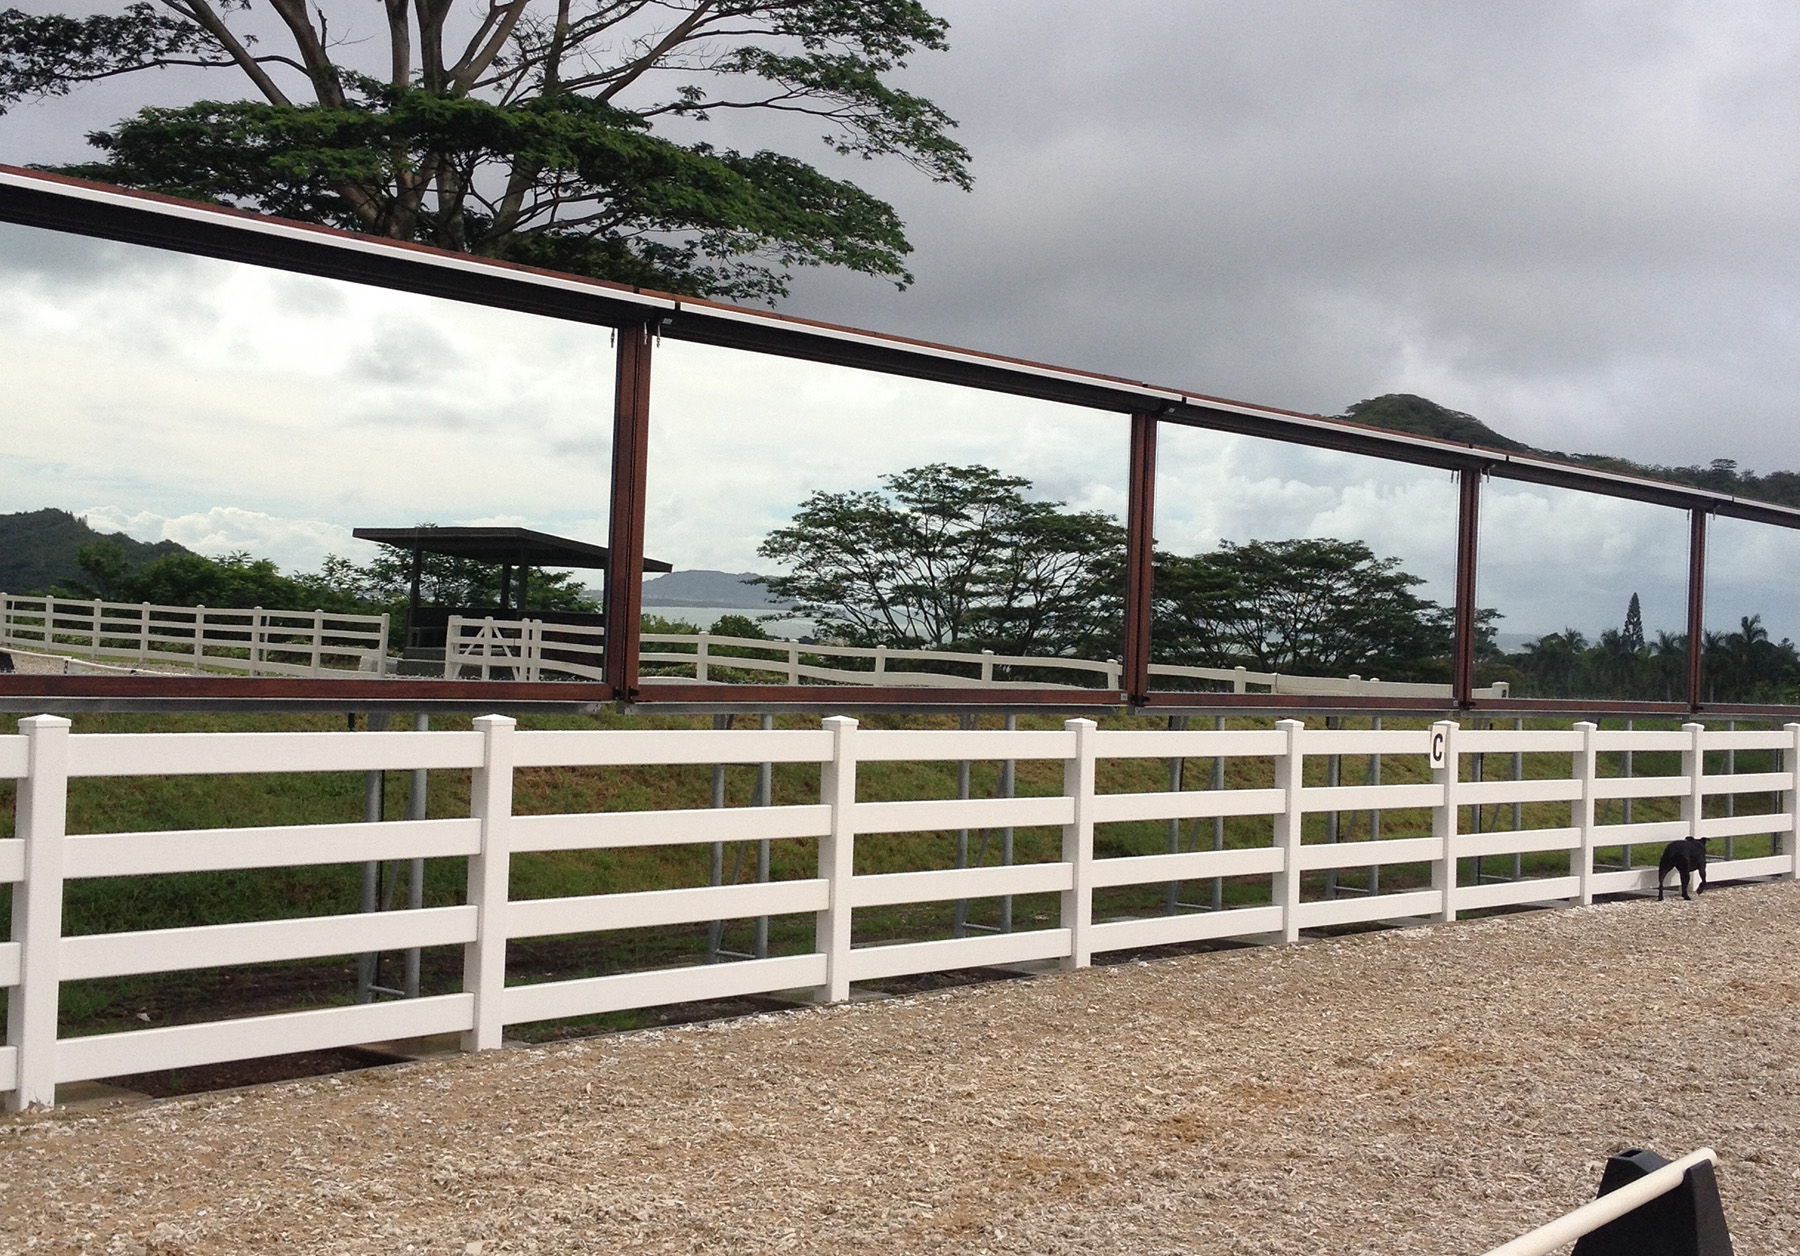 Outdoor ridind arena mirrors